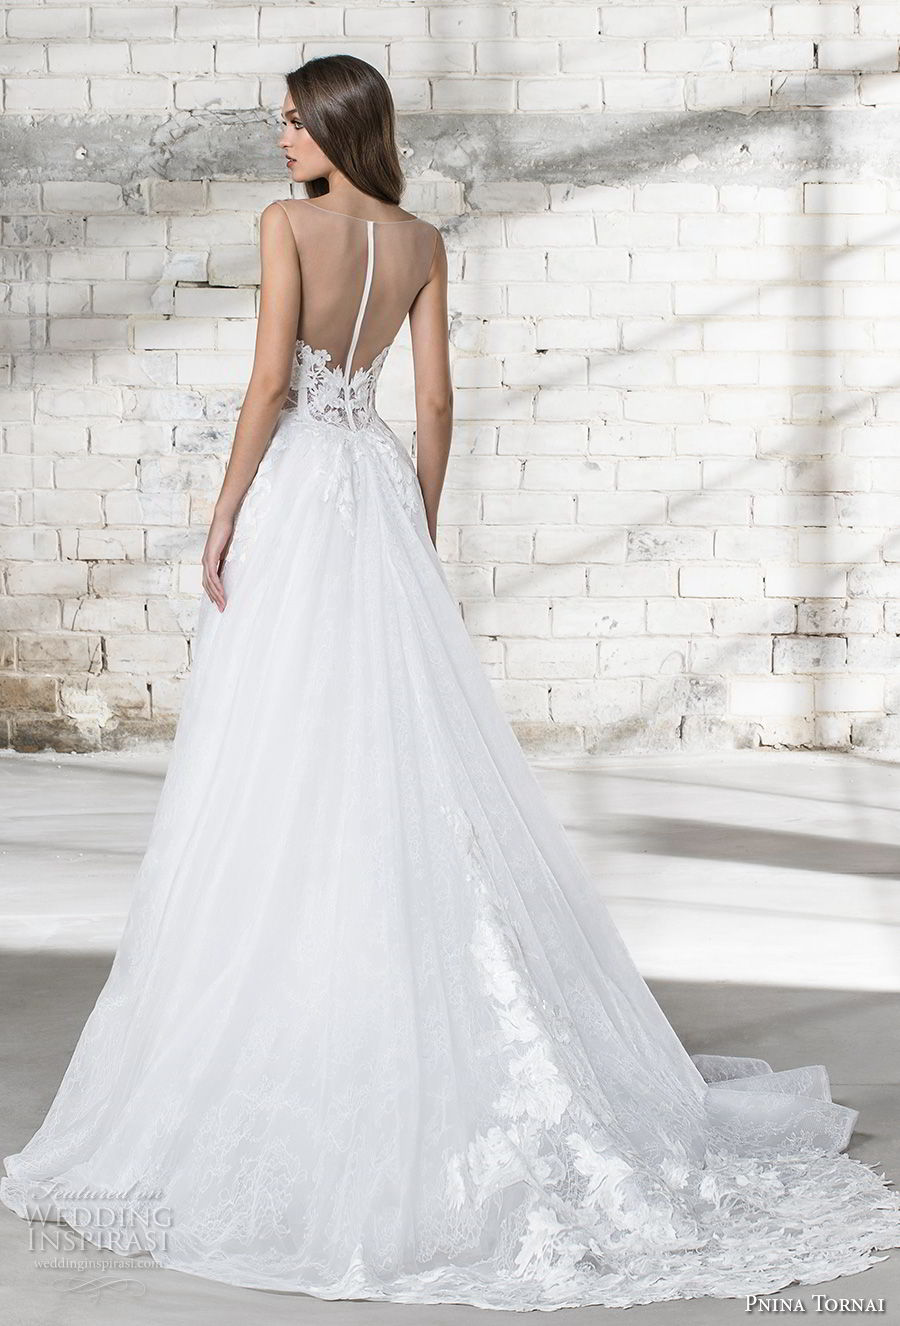 pnina tornai 2019 love bridal sleeveless thick strap plunging sweetheart neckline heavily embellised bodice romantic a line wedding dress sheer button back chapel train (11) bv